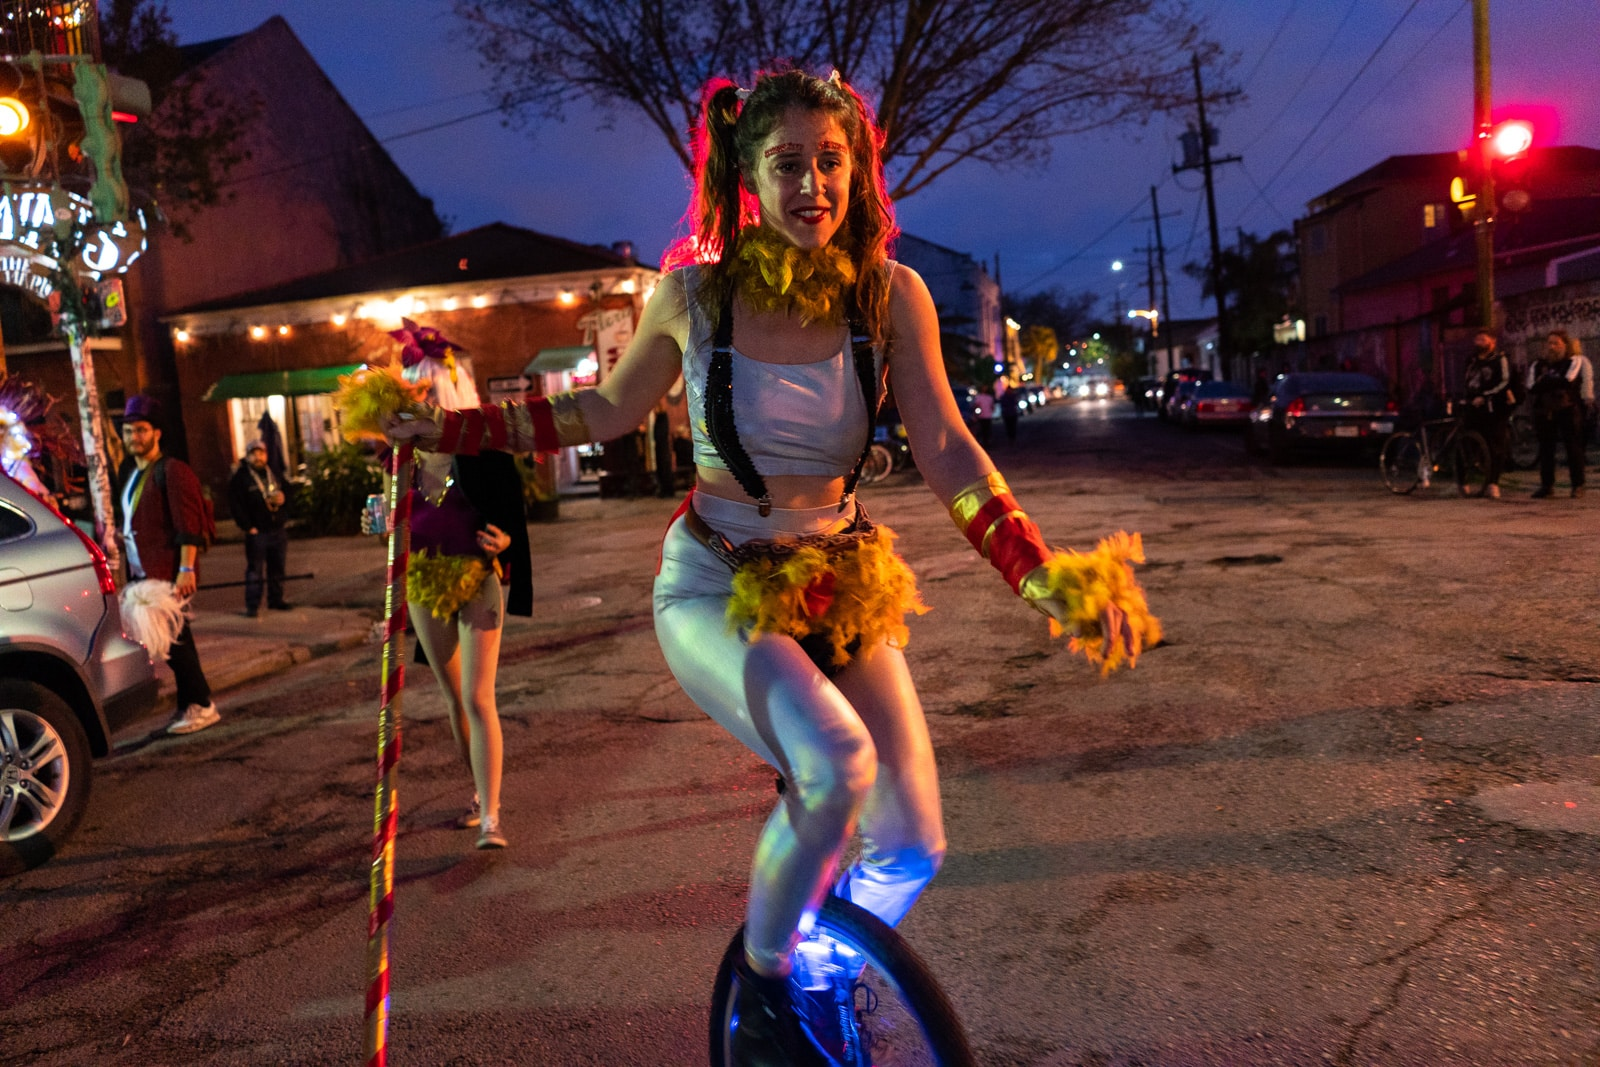 Girl riding a unicycle in New Orleans